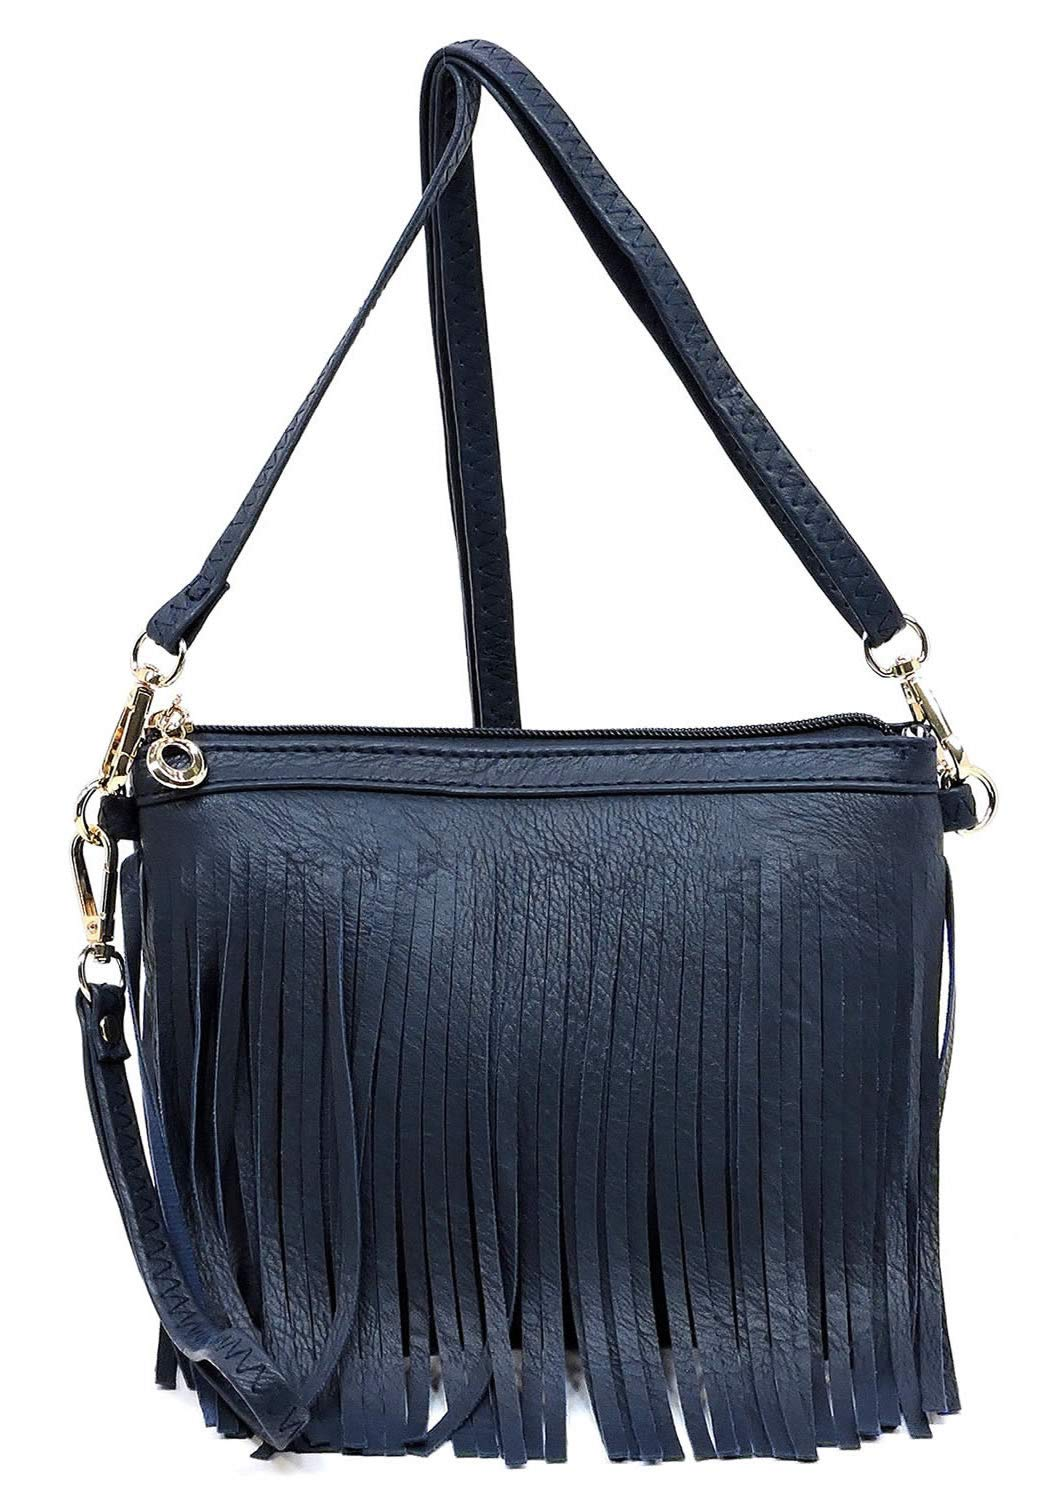 Elphis Western Vintage Fringe Tassel Wristlet Clutch Hipster Shoulder Bag Cross Body Bag(091) (Navy)